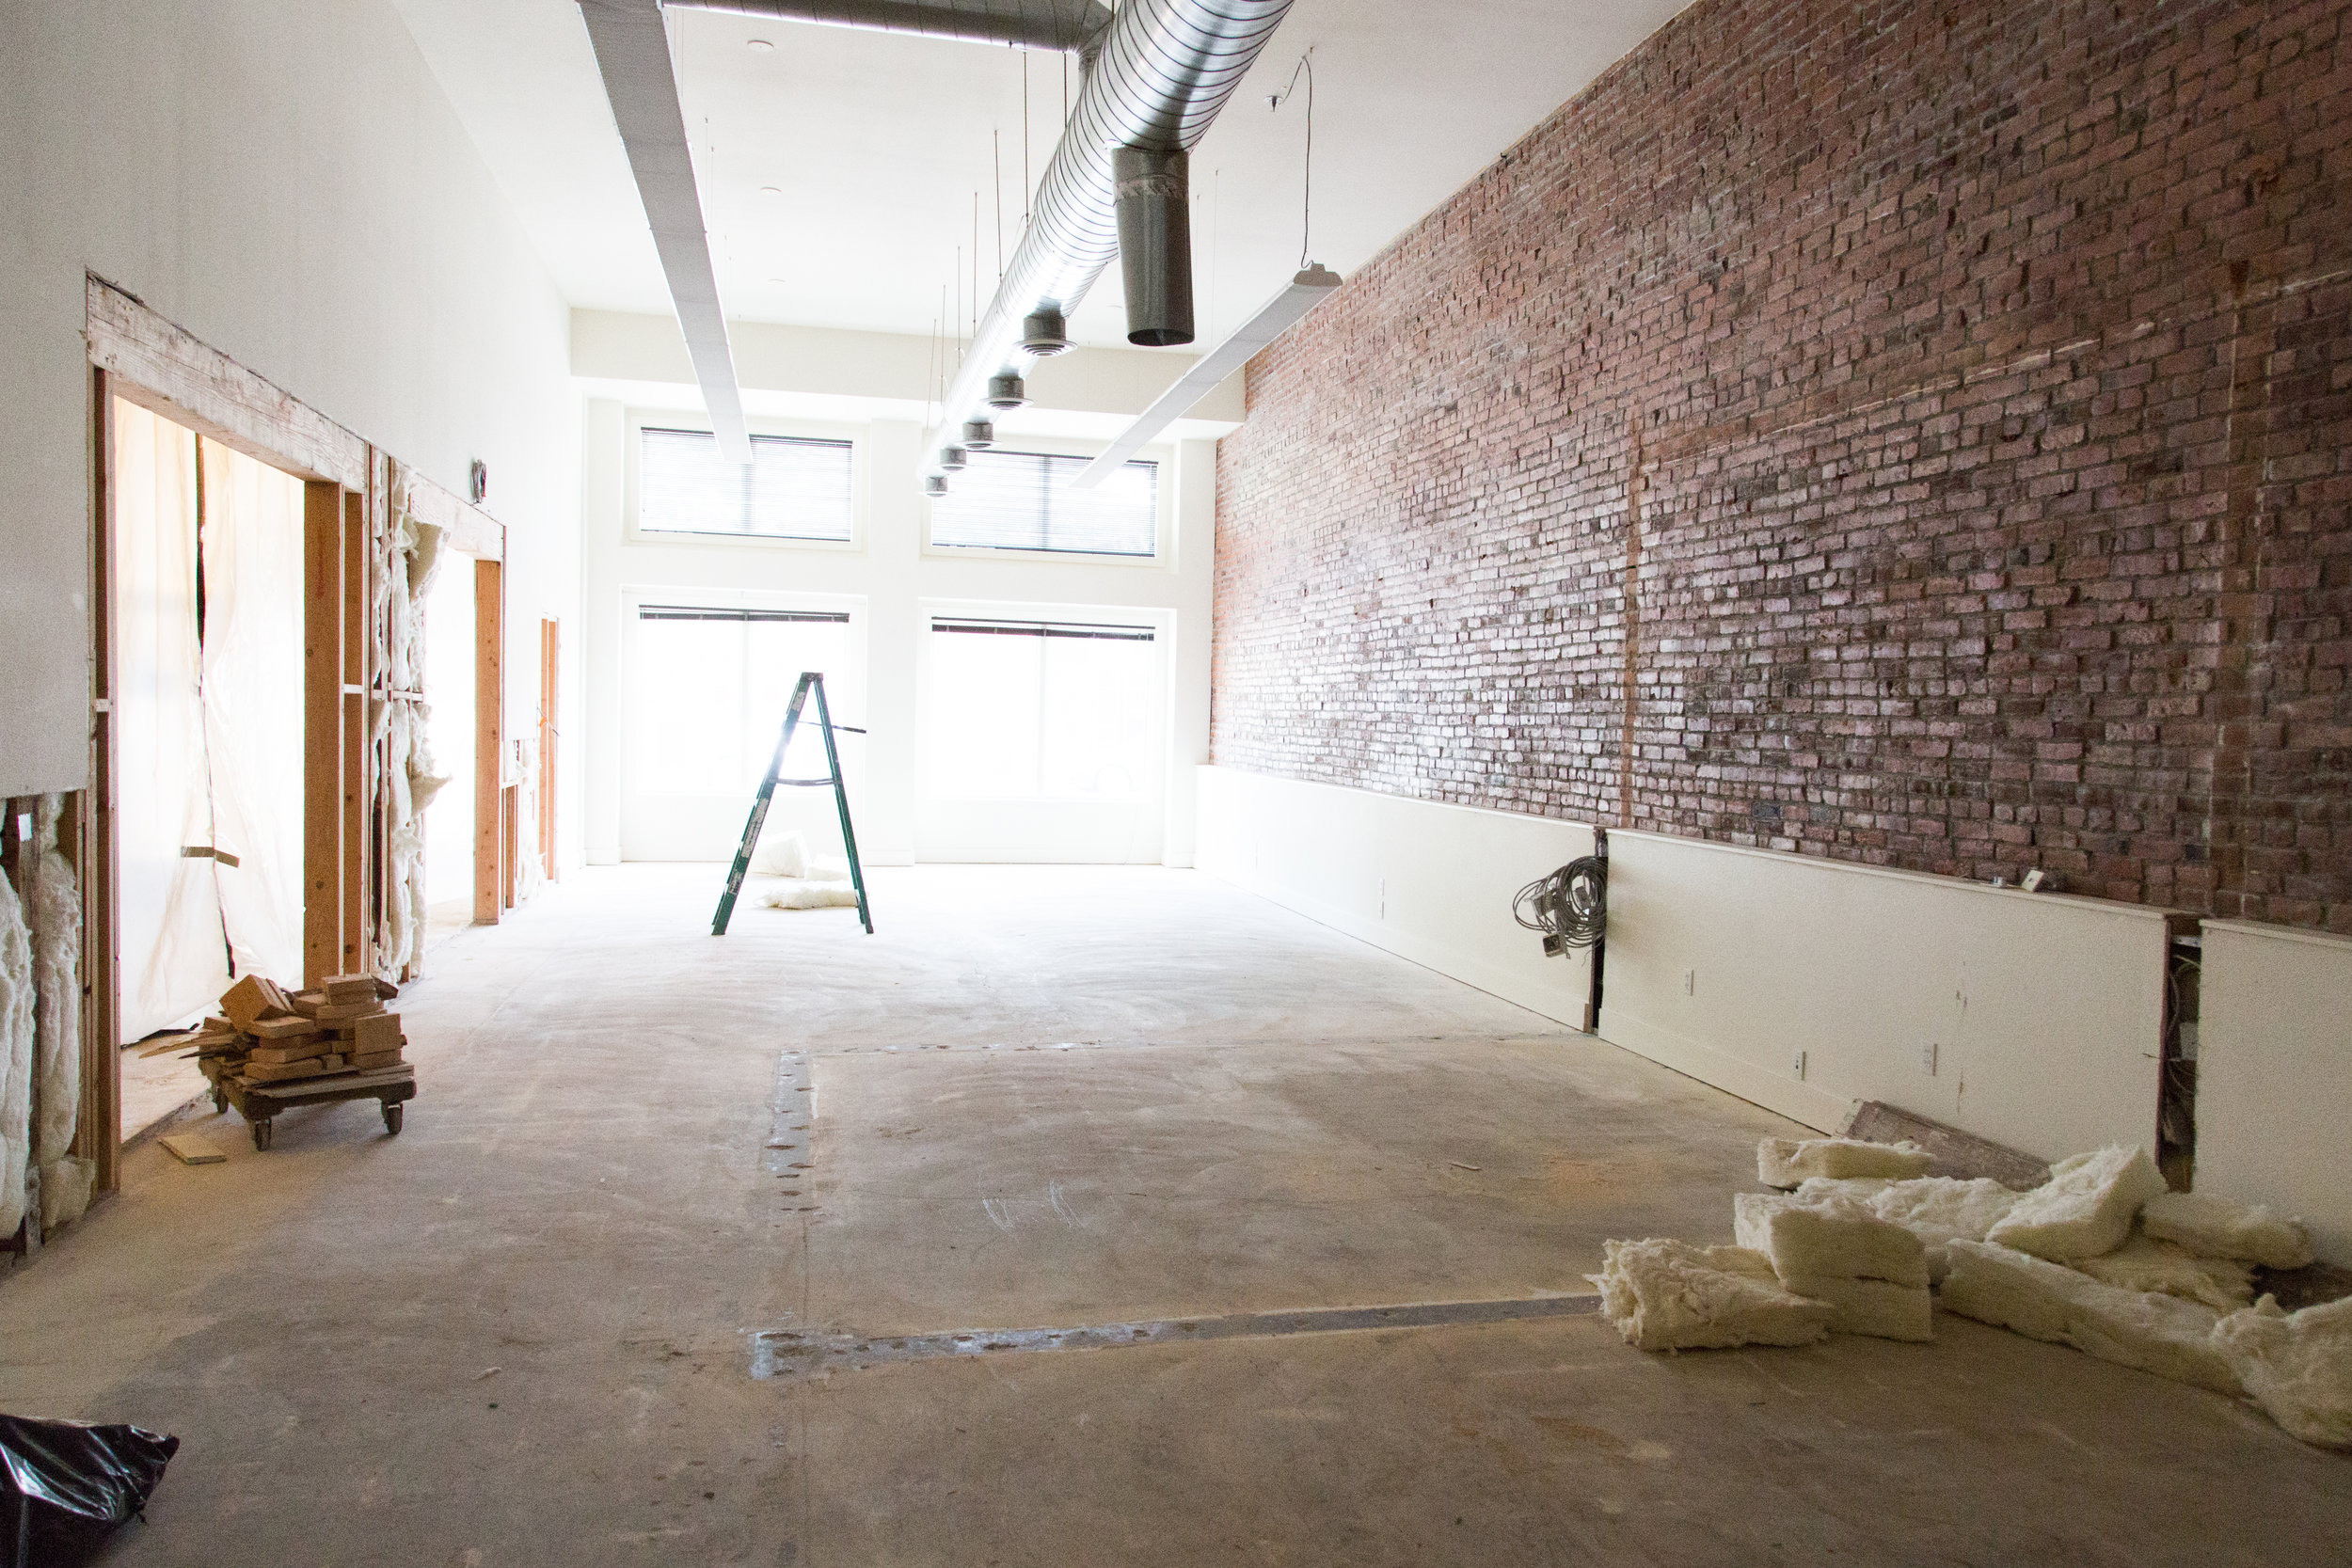 Microenterprise offices sans walls shows the huge transformation that the building has already gone through!